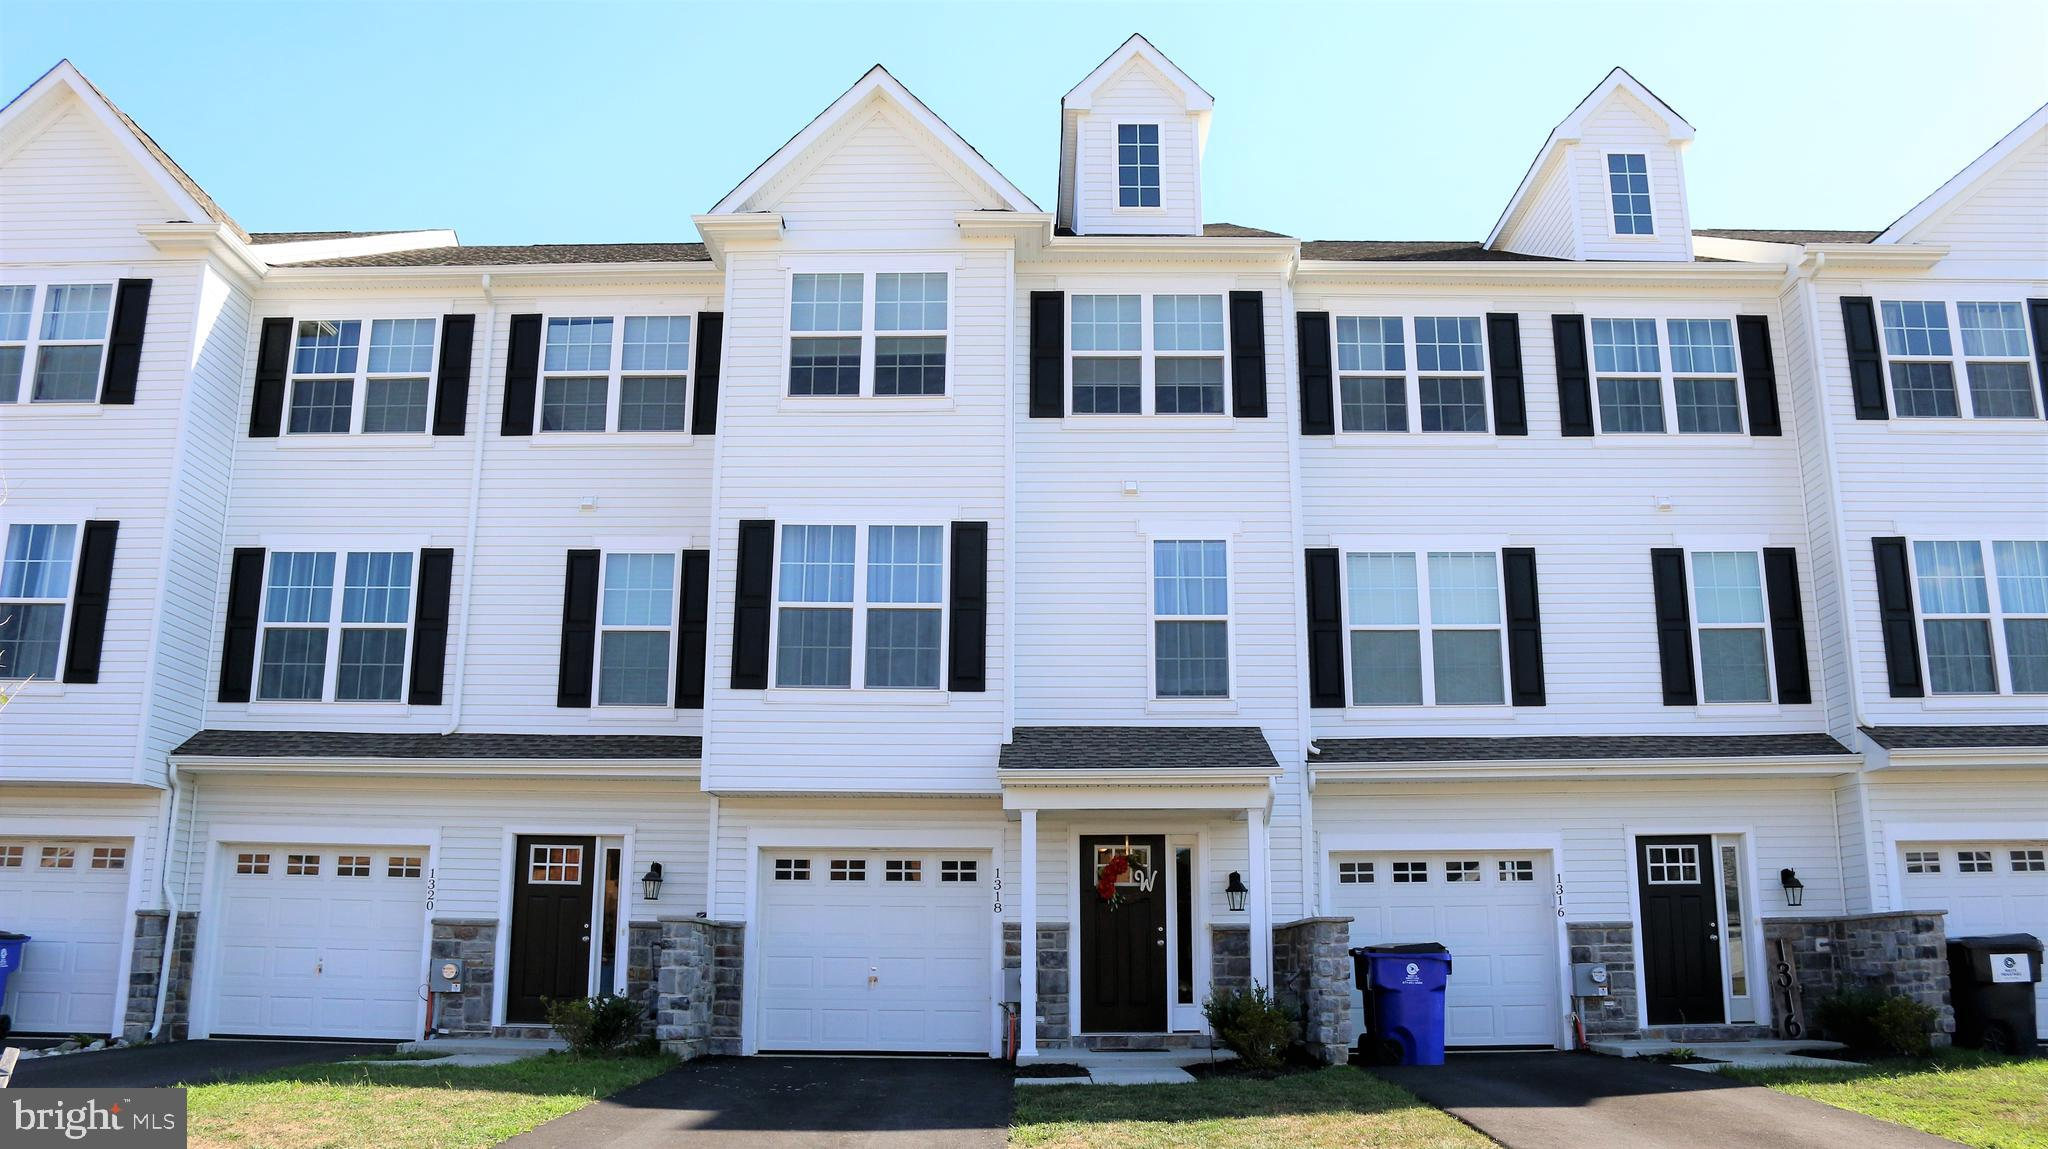 Welcome to our listing at 1318 Carrick Ct In Middletown Delaware.  This lovely 3 to 4 bedroom 2.5 bath townhome with 1 car garage located in the appoquinimink school district offers an exceptional value for anyone looking for that hard to find 4th bedroom option under $300k in the Appo school district.  This beautiful home features an attractive exterior including stone veneer accents and classic styling accentuated nicely by 2 front facing peaks to stand out from the other homes in the row.  Inside you'll find a brightly lit foyer leading to a finished basement space which is currently being used as a 4th bedroom as it does have the necessary closet, and if you want to improve on that, there is a plumbing rough in for a full bath.  If you don't need the 4th bedroom and just want a quiet place to hang out away from everyone else, this space is ideal.  On the main level you'll find an airy open concept living room, dining room combo adjacent to a spacious eat in kitchen complete with a center isle/breakfast bar combo, granite counter tops, stainless appliances, and gas cooking.  Upstairs you'll find 2 generously sized secondary rooms, a convenient upstairs laundry,  and a spacious master suite complete with master bath.  This home was built in 2018 so it is a fantastic option if you want the newness of new construction but you want to actually see what you're getting and don't want to wait for the build.  Put this one on your tour today!